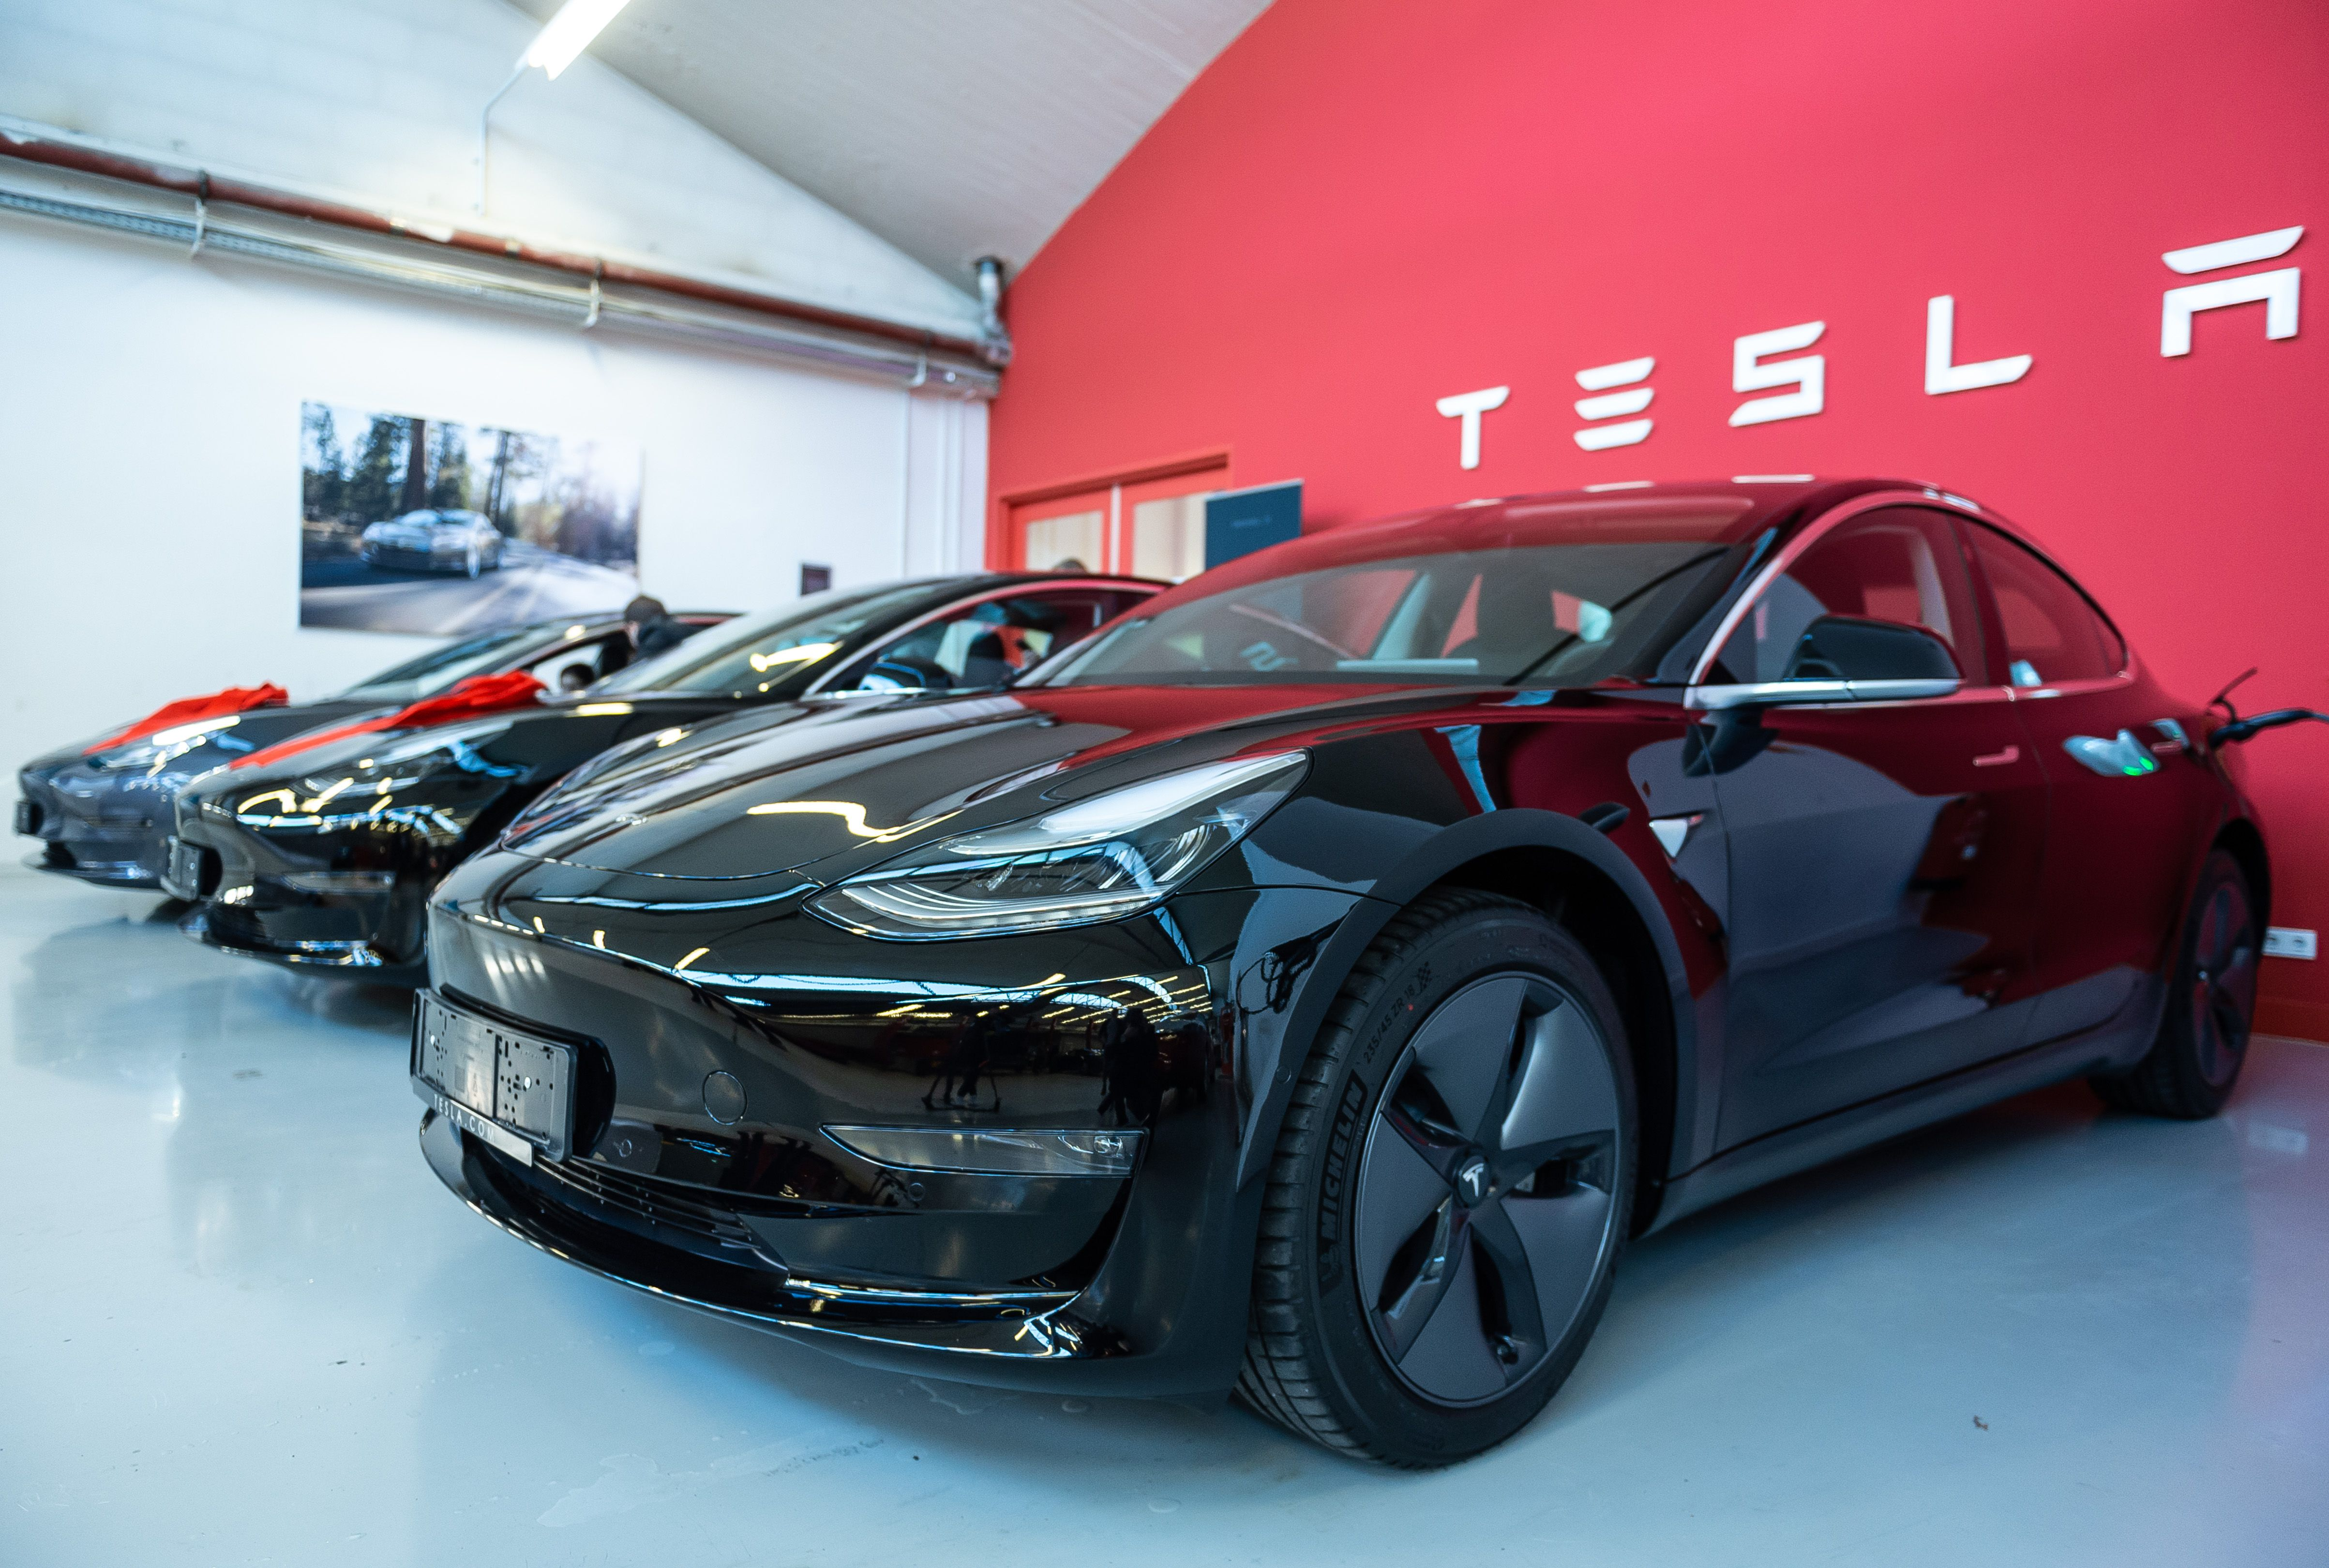 Tesla Q2 2019 production and delivery numbers